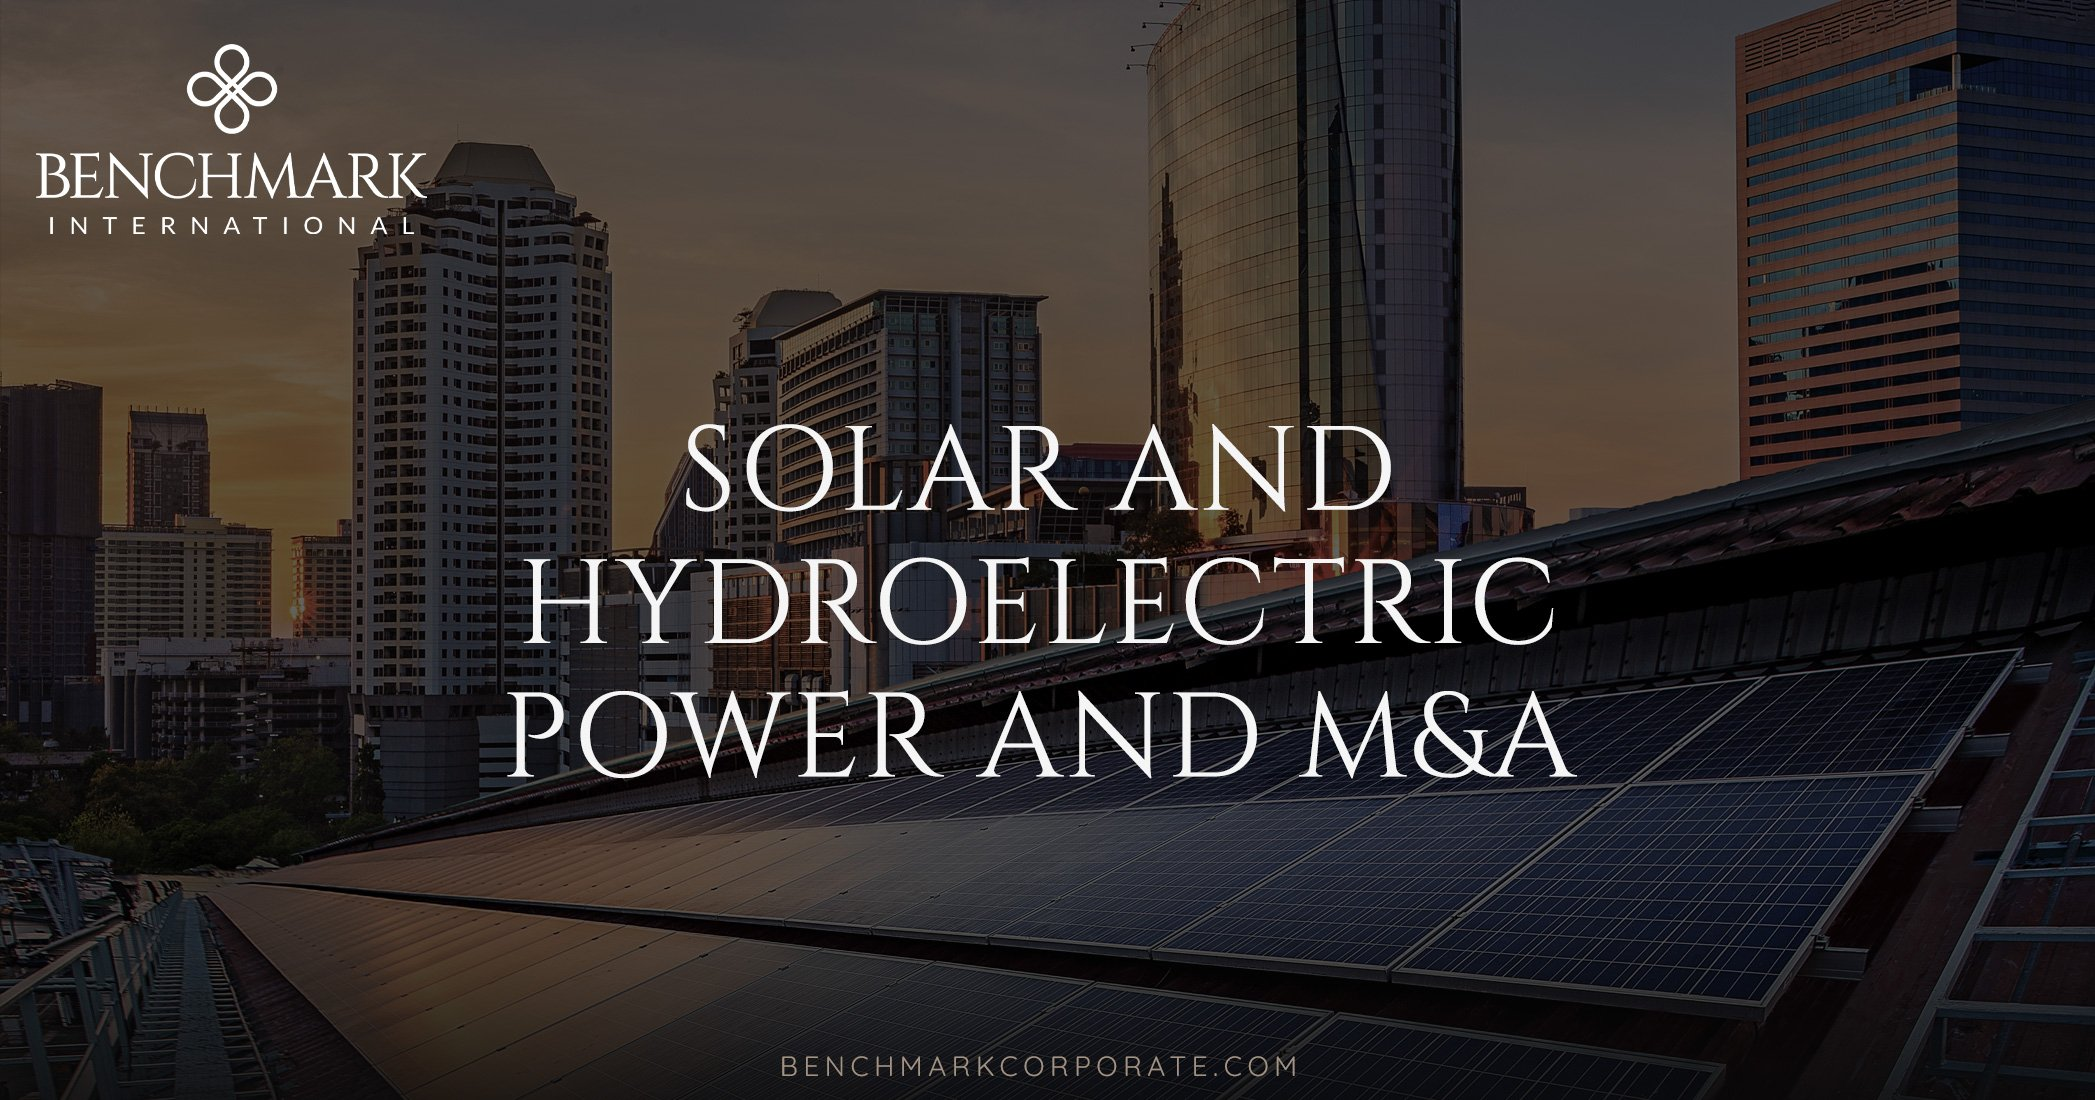 Solar and Hydroelectric Power and M&A